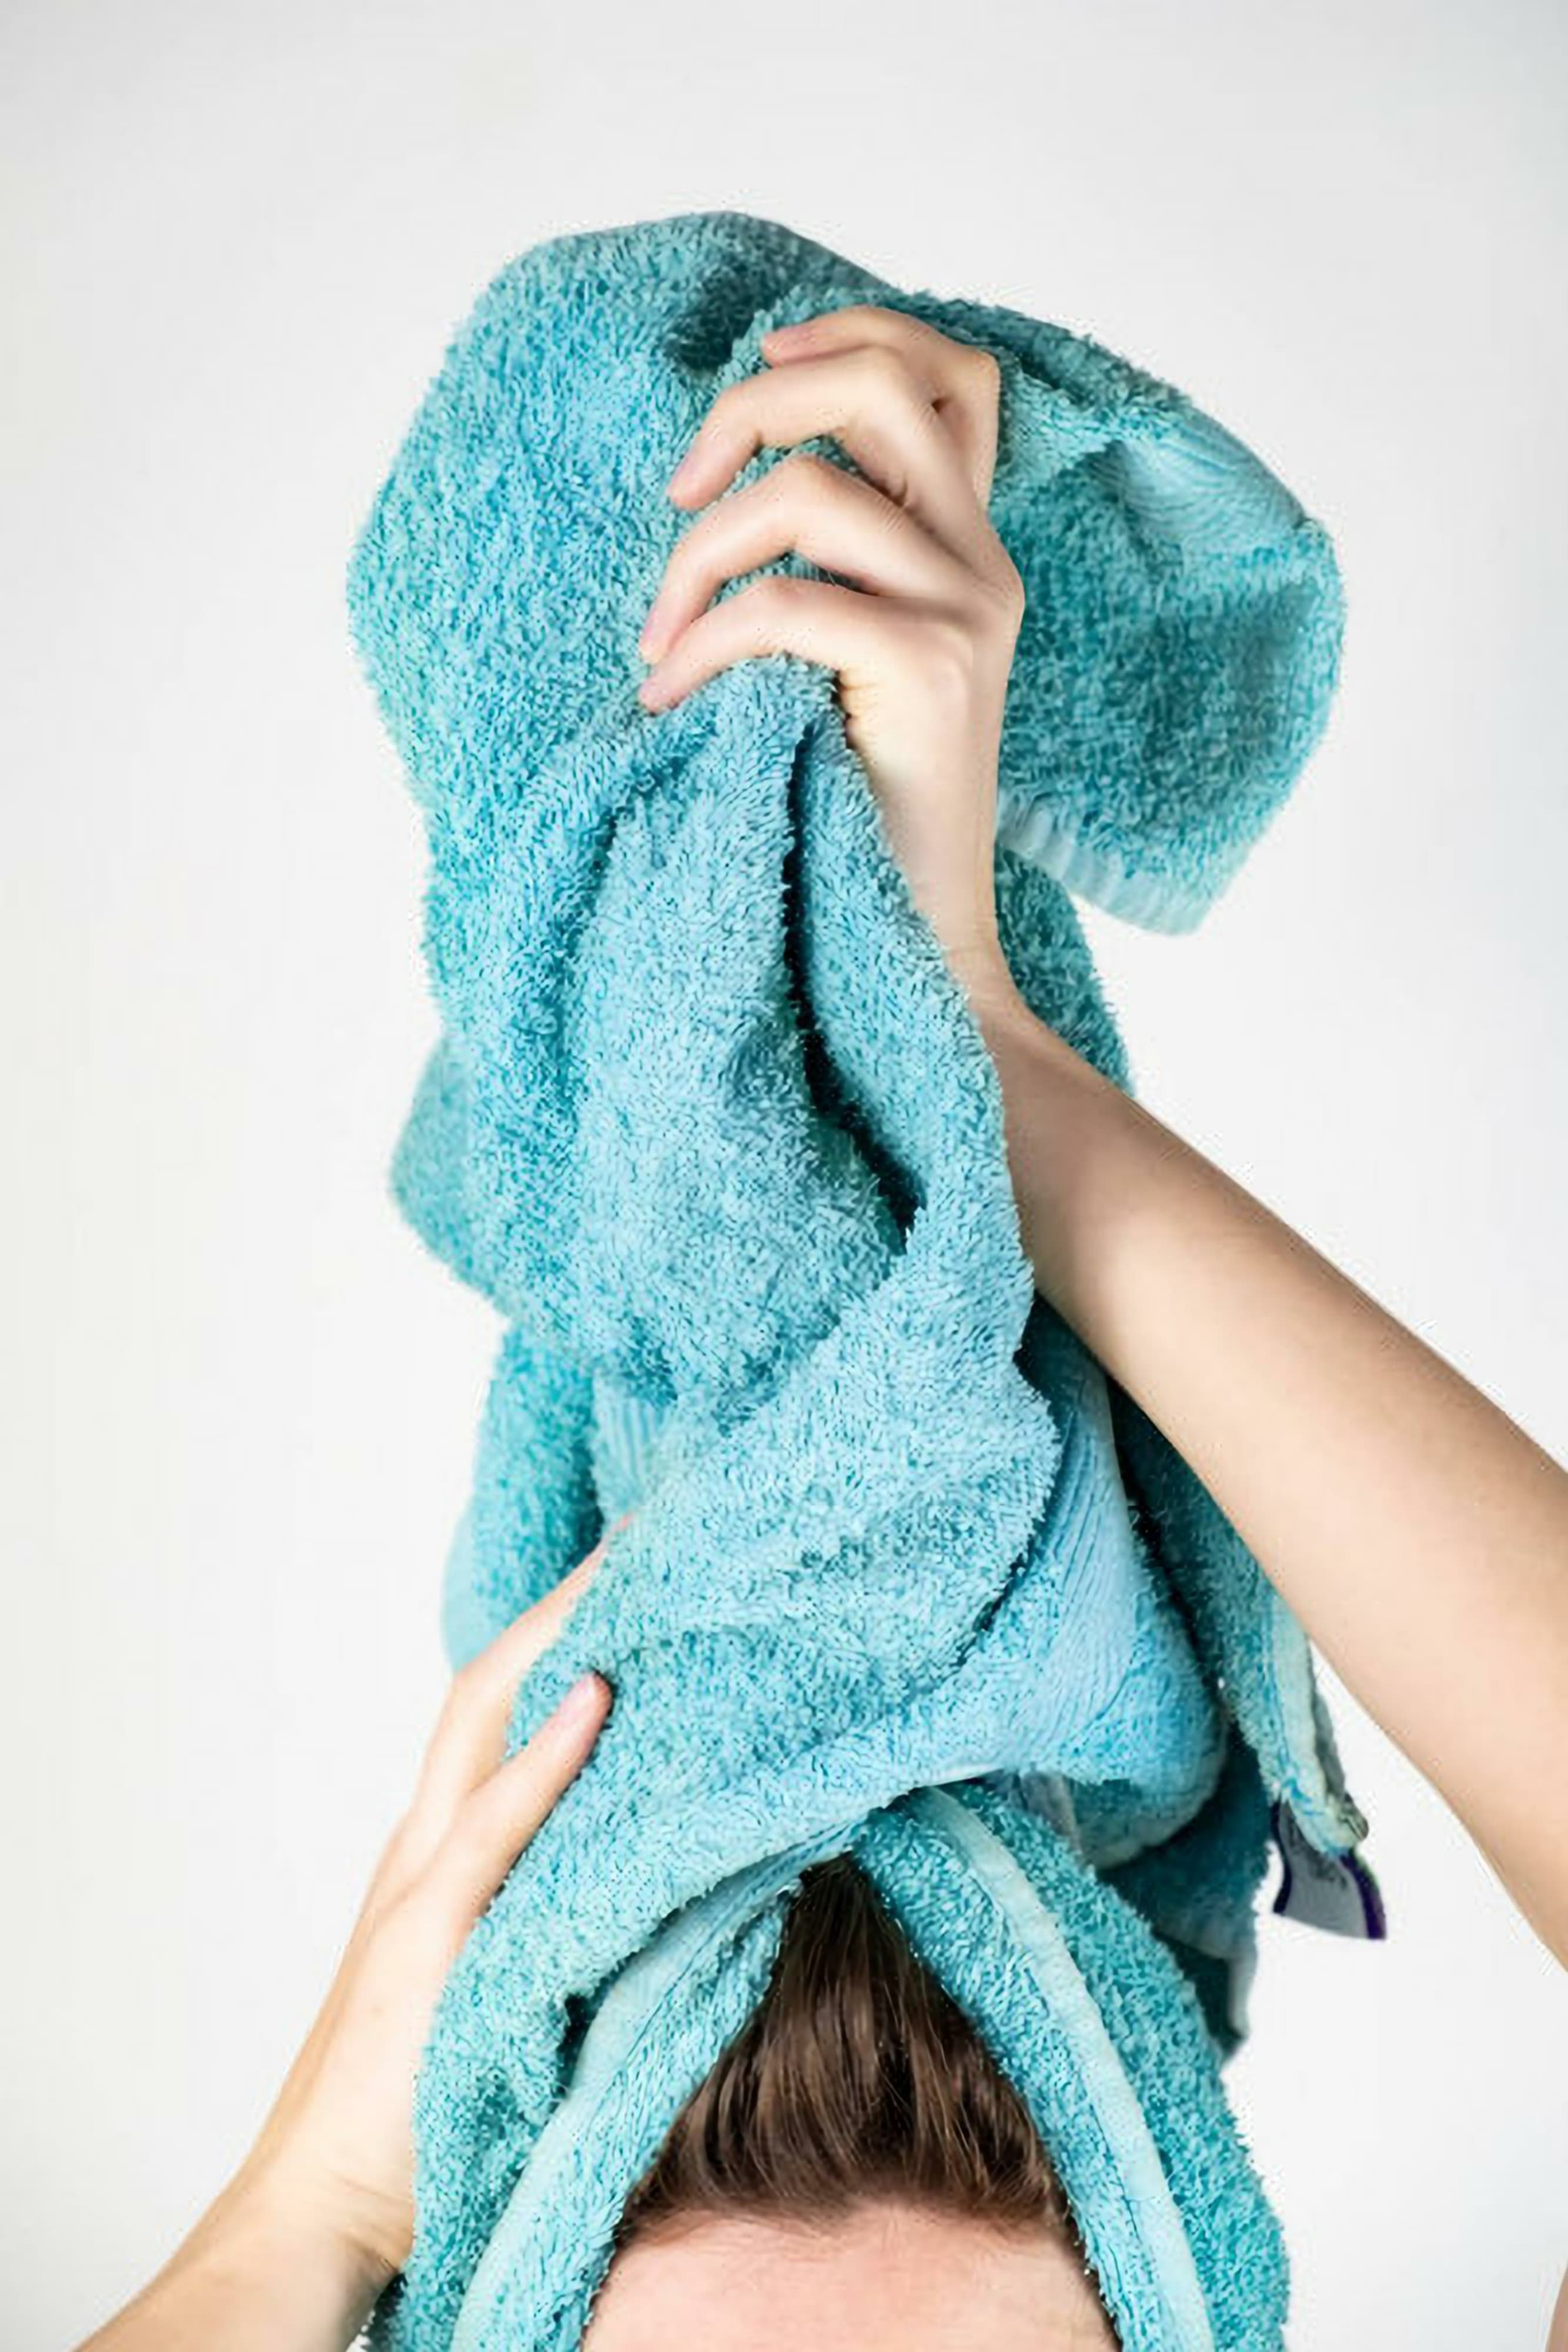 depositphotos_248873540-stock-photo-female-drying-her-hair-withResized-opt